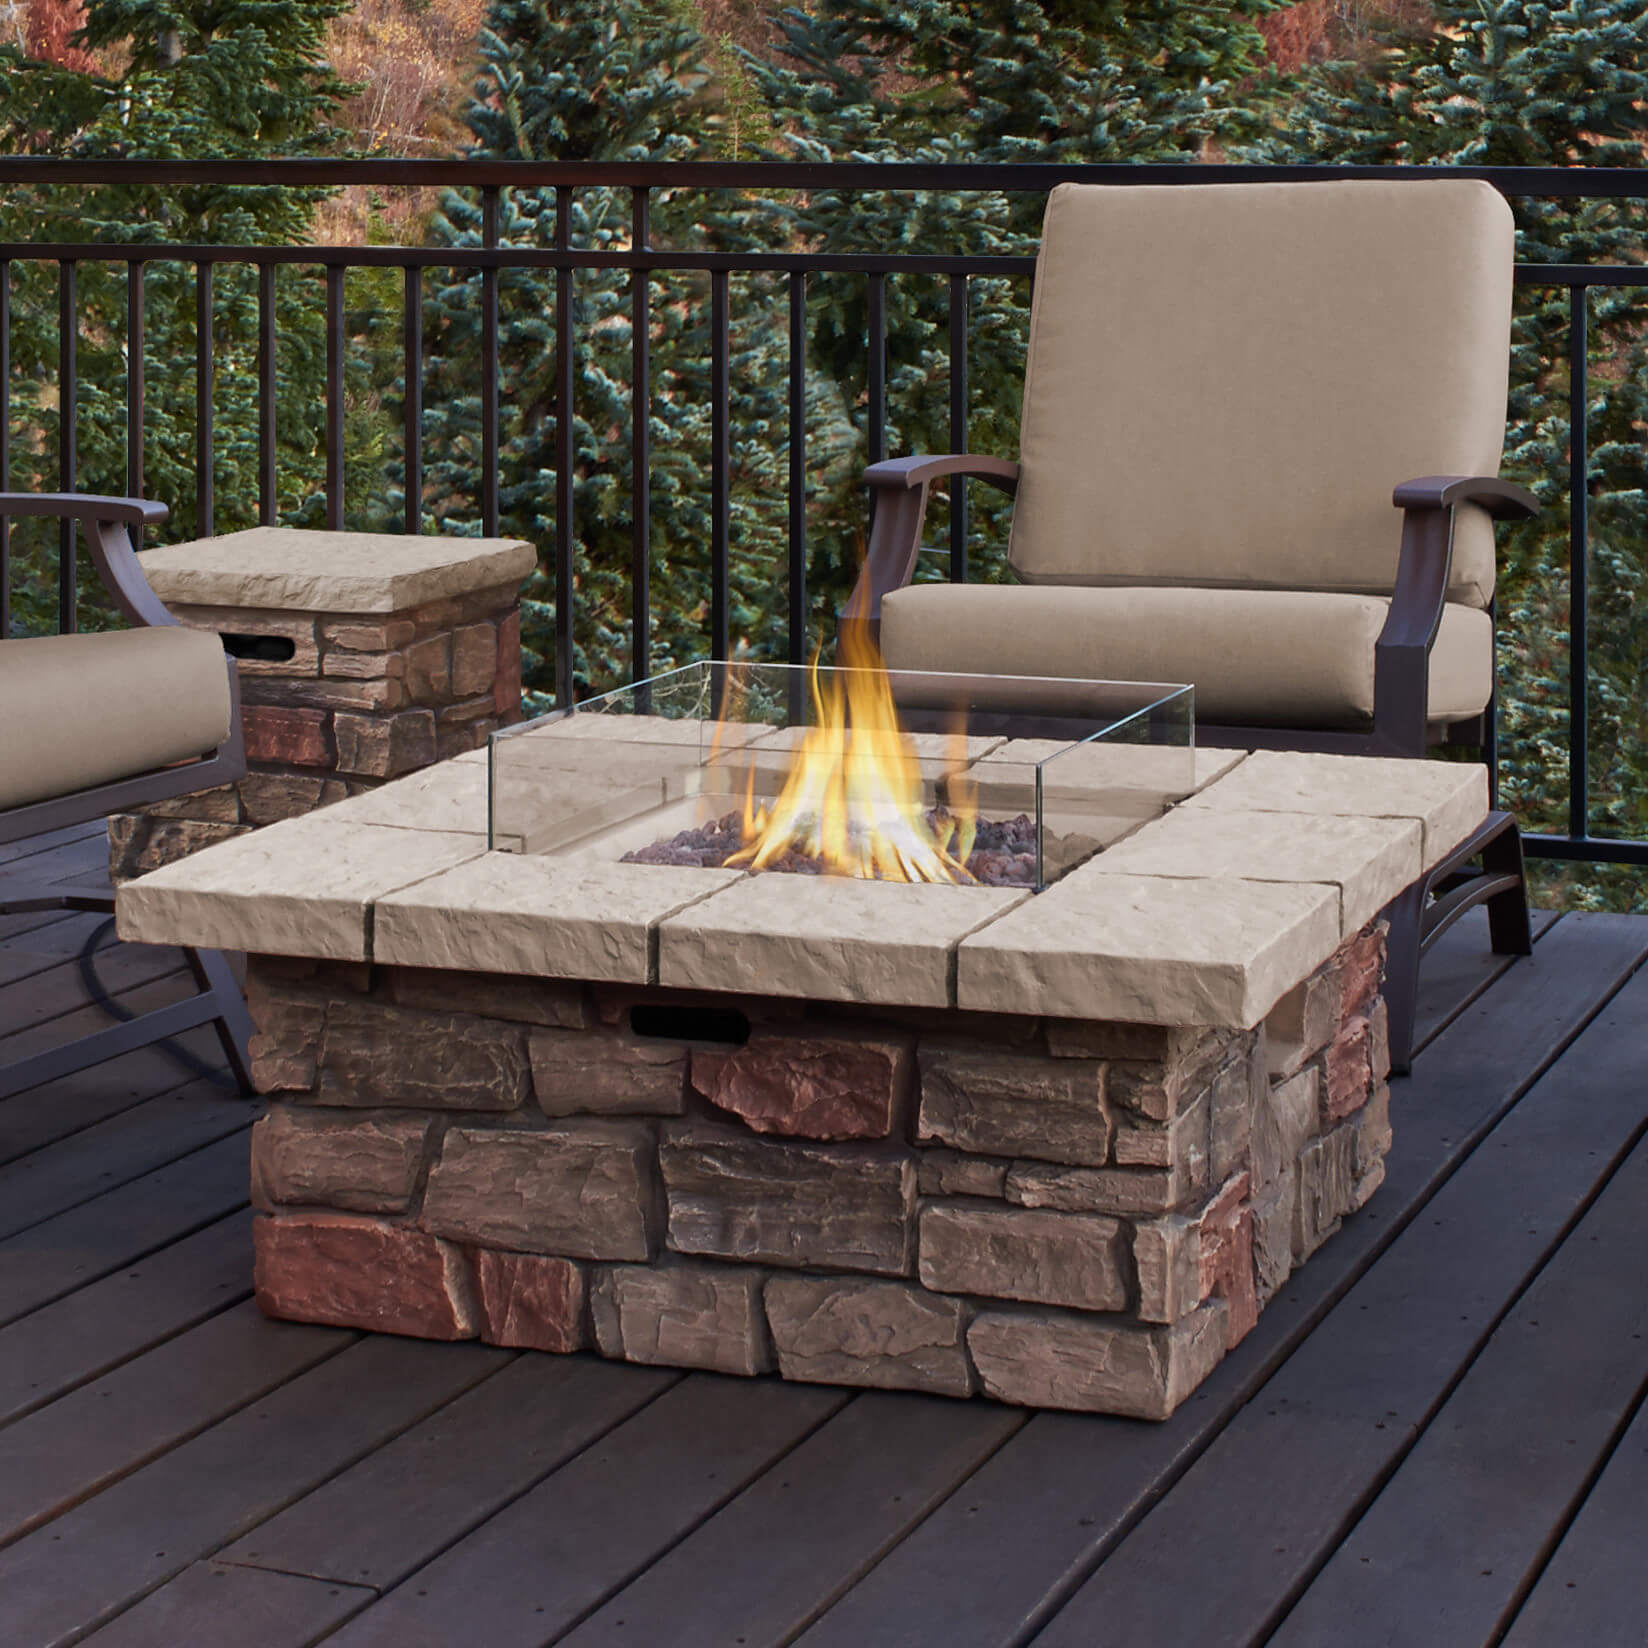 Give Your Home A Cool Fire Pit Table With This Brick Façade Propane Patio  Fire Pit